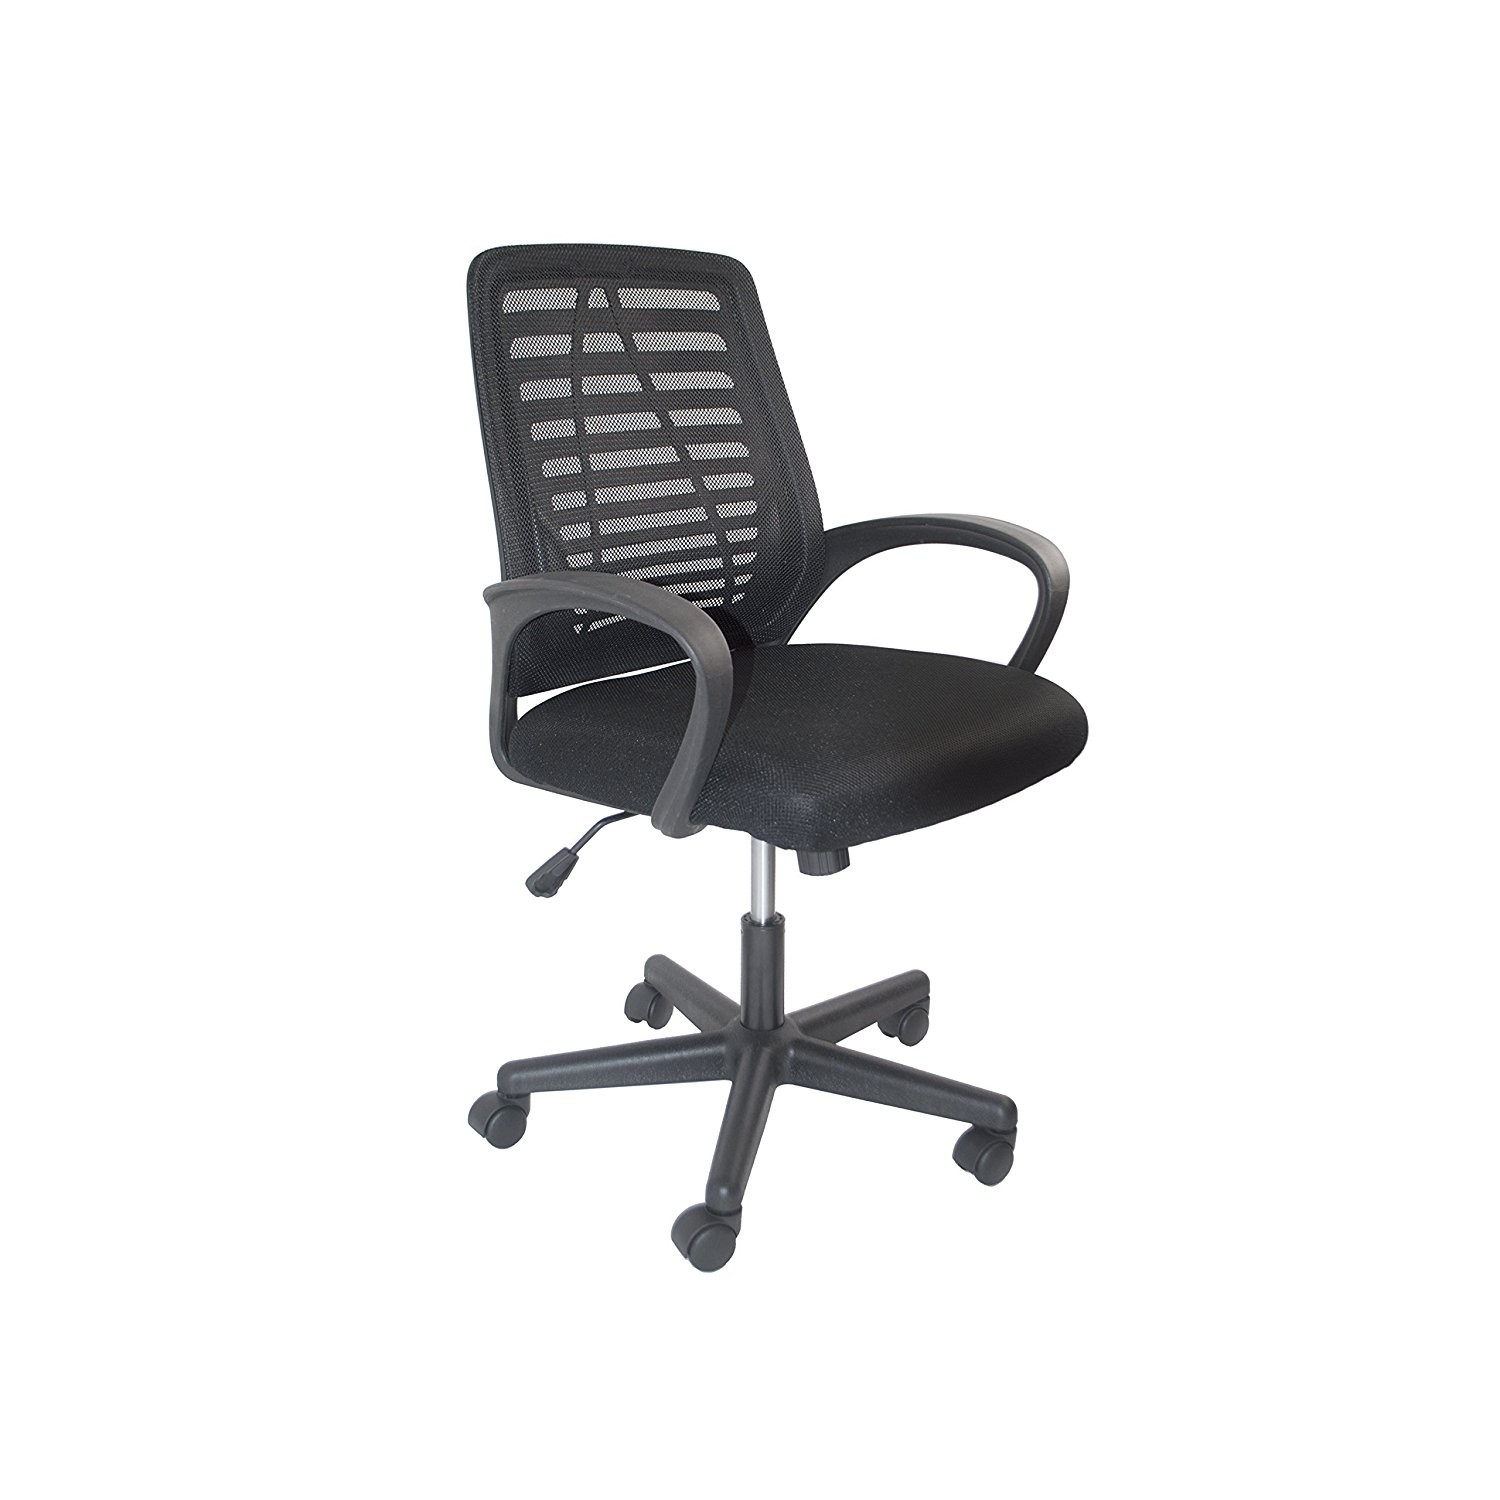 ALCM815BL Black Ergonomic Office Chair, High Back Mesh Chair with Armrest